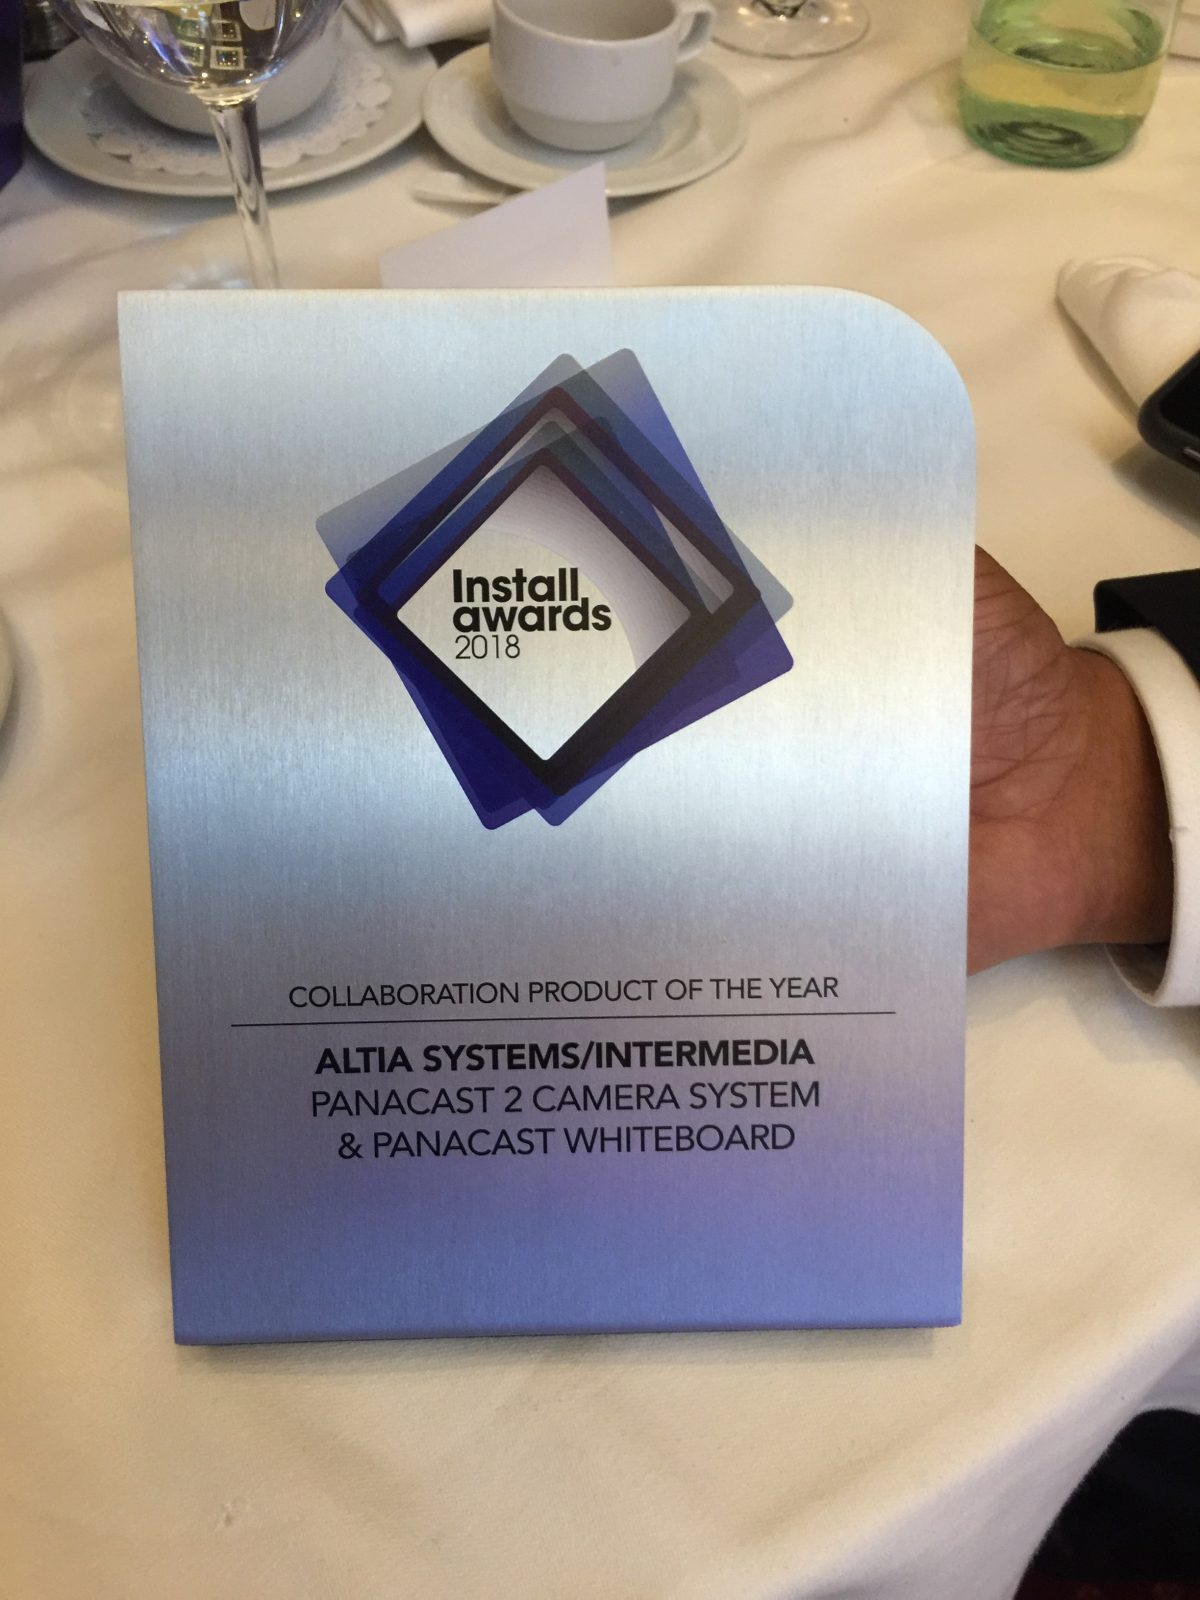 We won the Collaboration Product of the Year award at Install Awards UK 2018